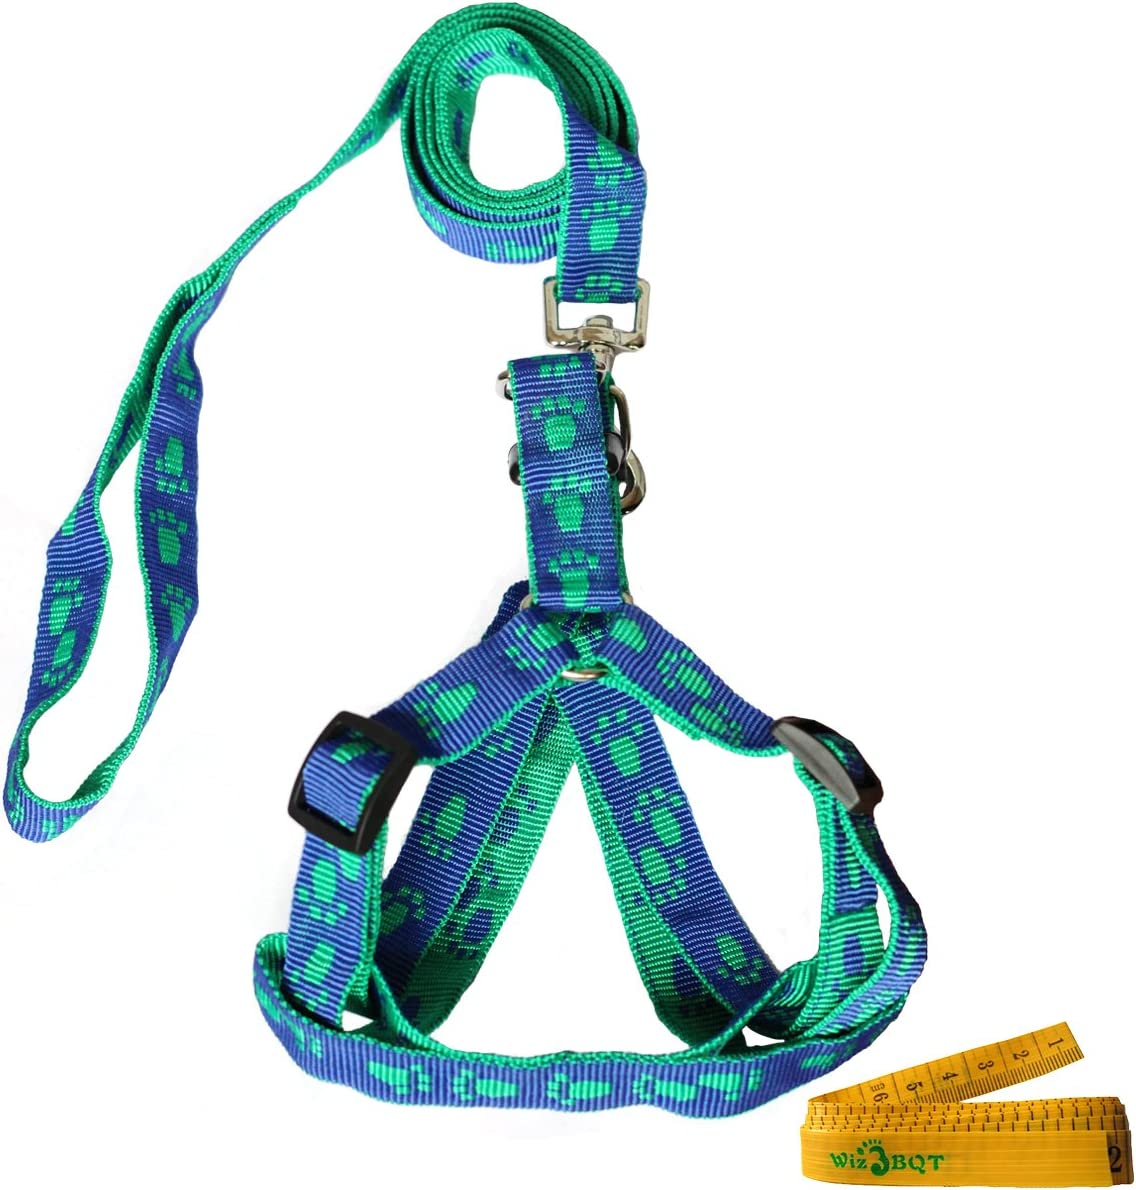 Wiz BBQT Blue and Green Adjustable Breakaway Dog Cat Pet Harness and Leash Set with Footprint for Dogs Cats Pets in Spring Summer Autumn (Medium)